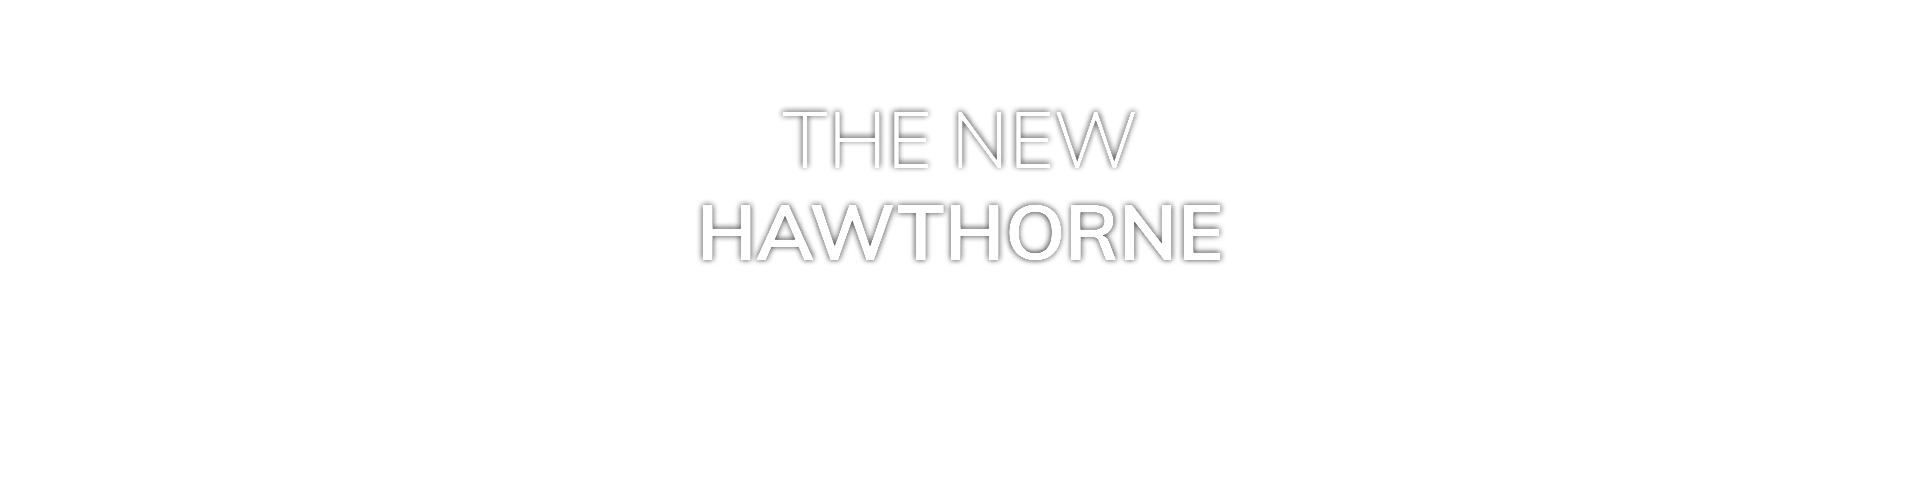 The New Hawthorne